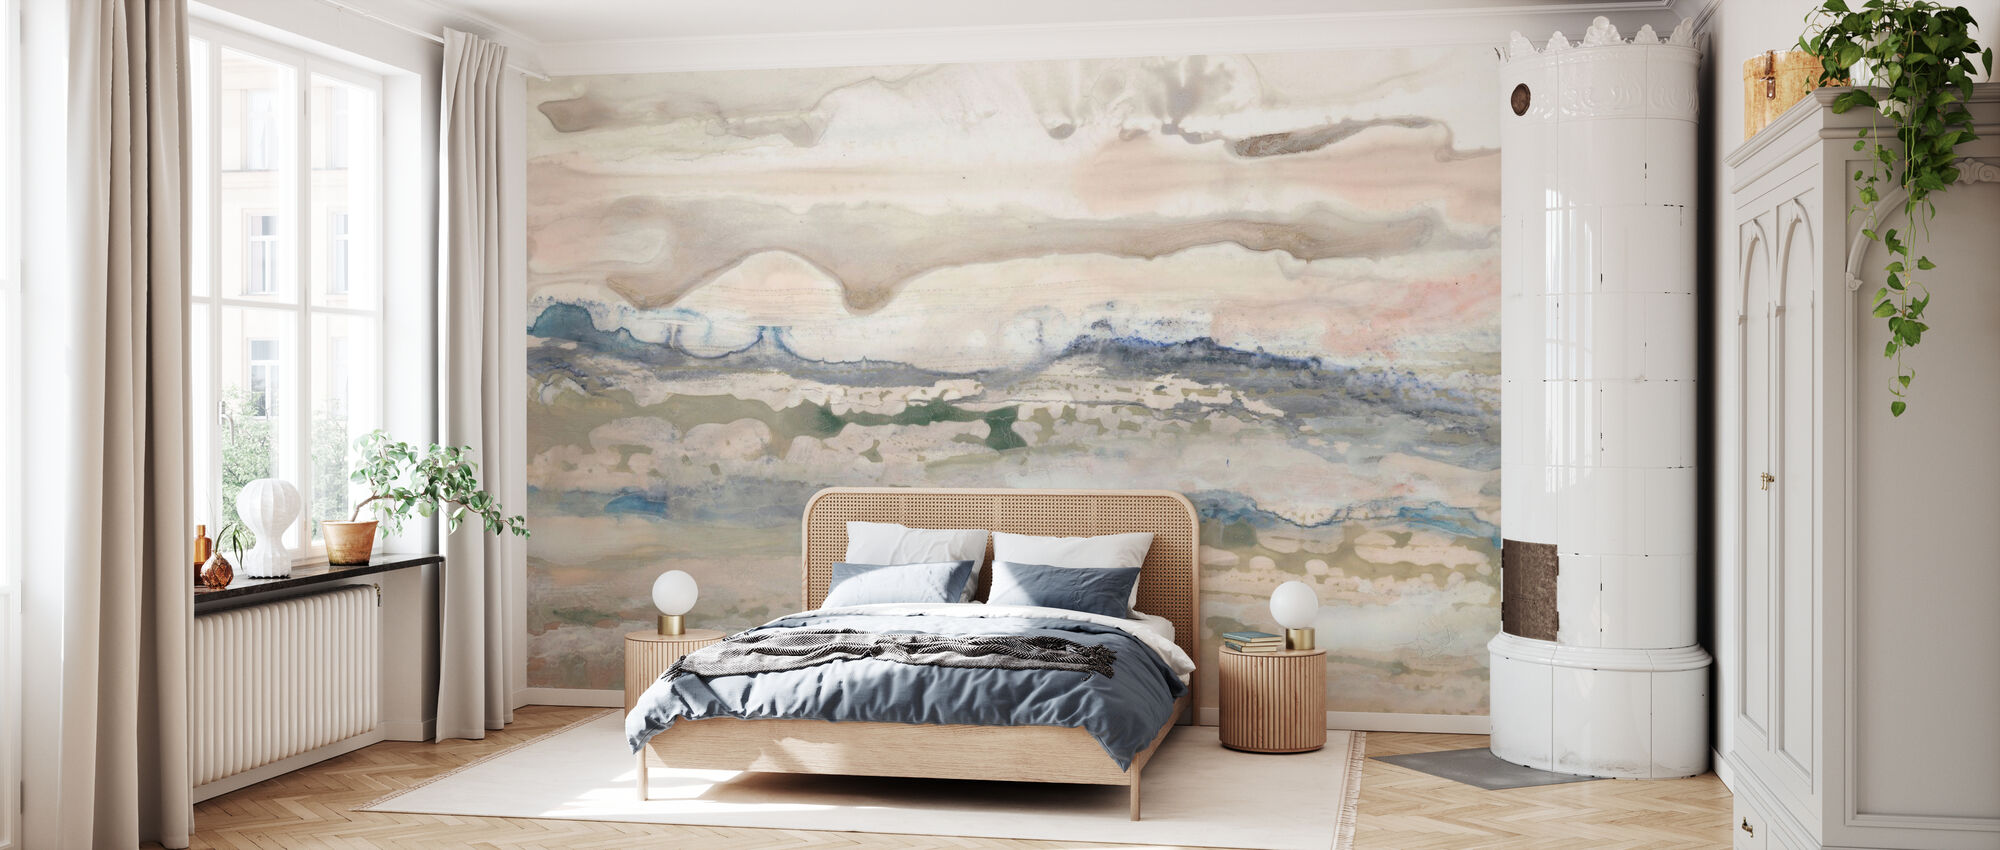 High Desert - Wallpaper - Bedroom